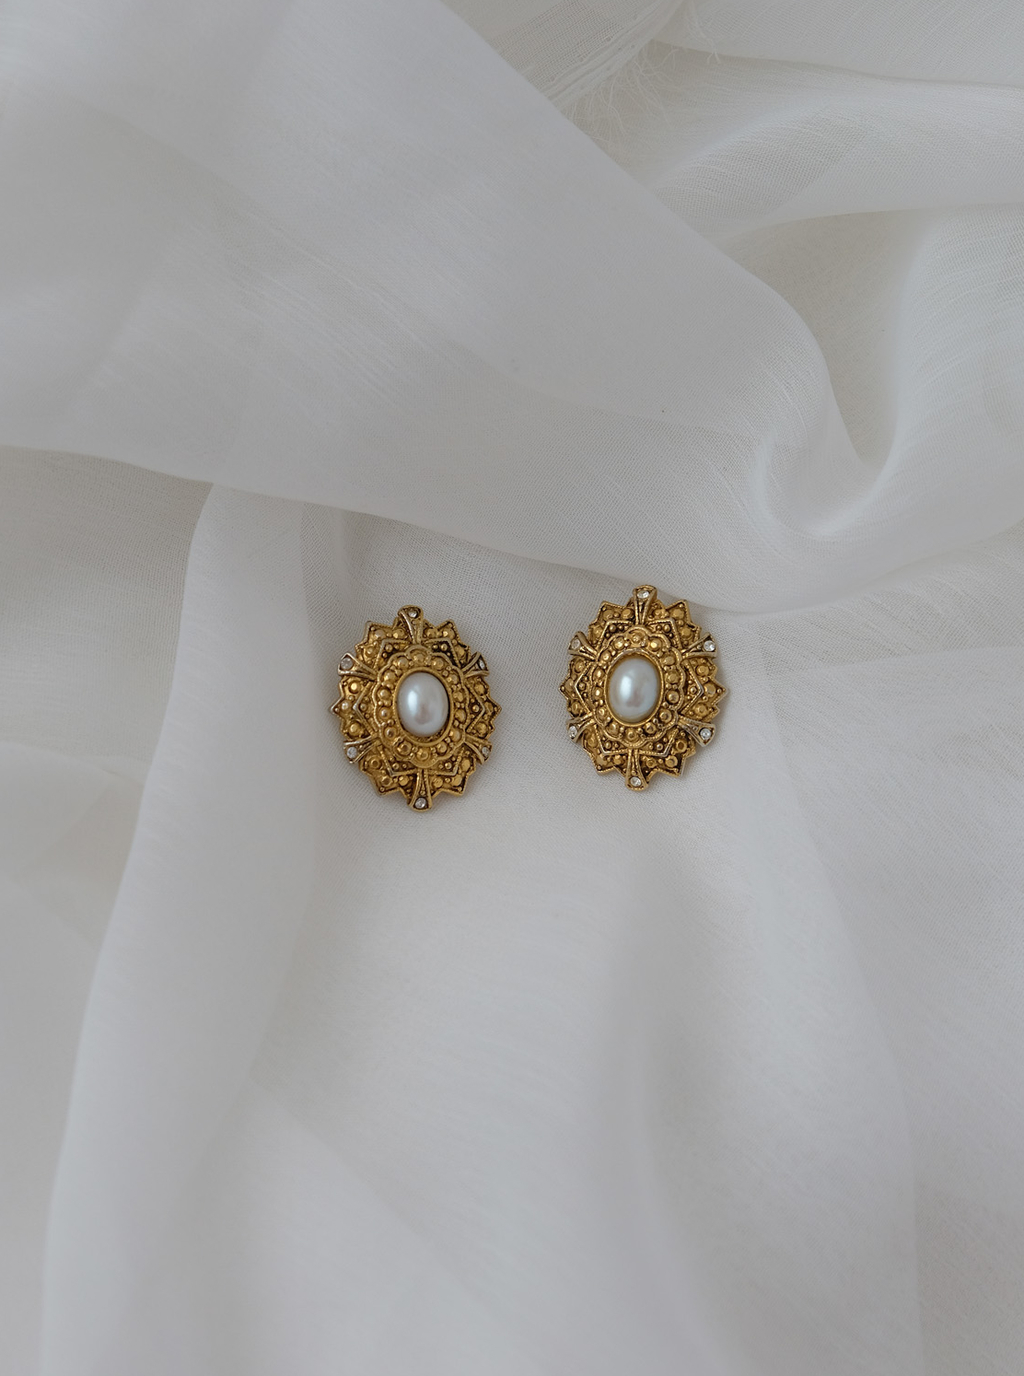 Earrings with a small pearl and crystals